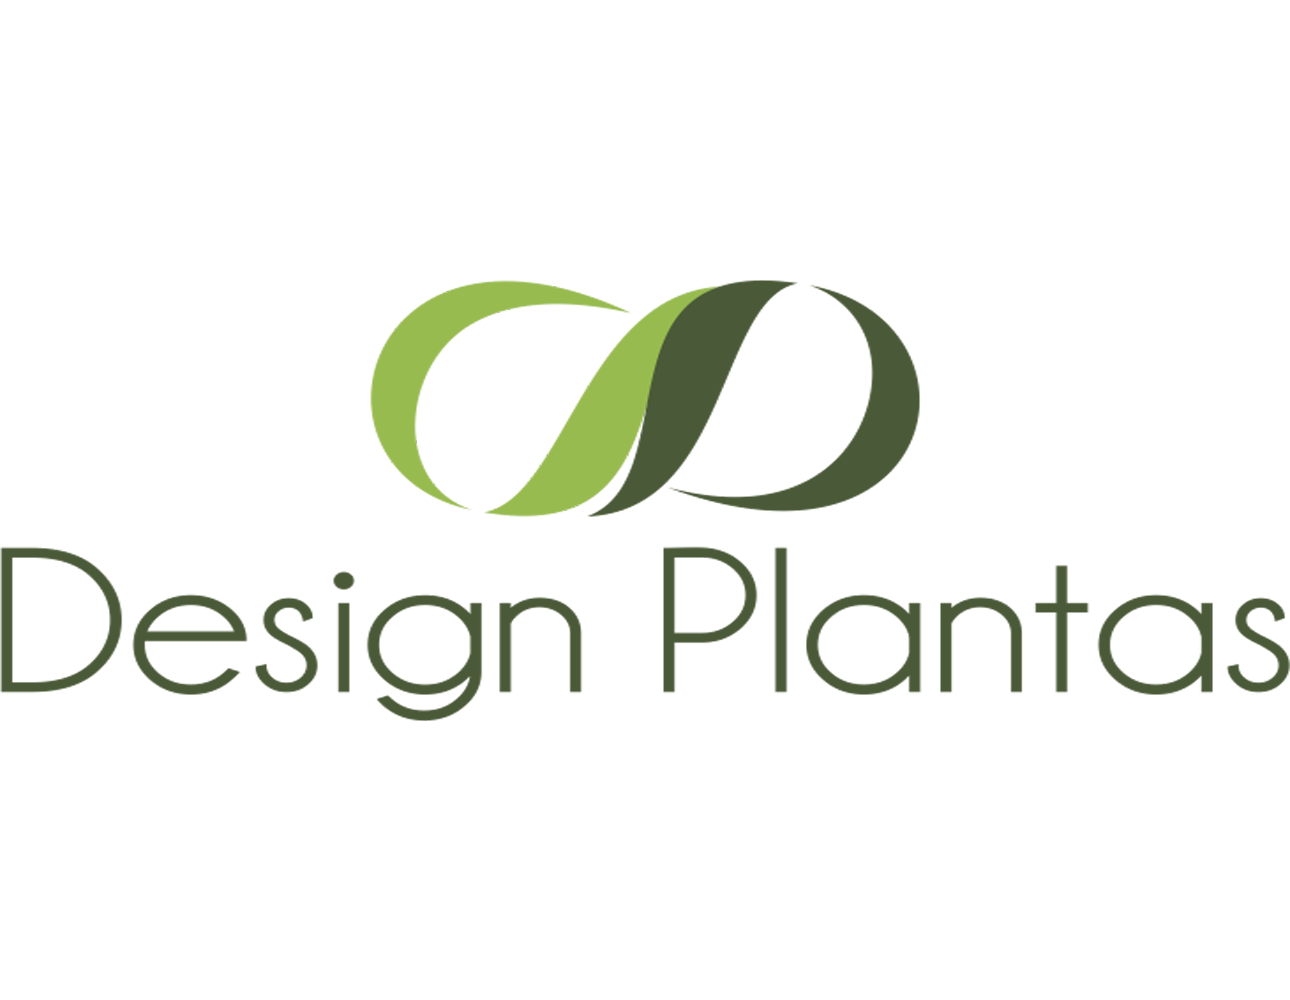 Design Plantas - Multivisi